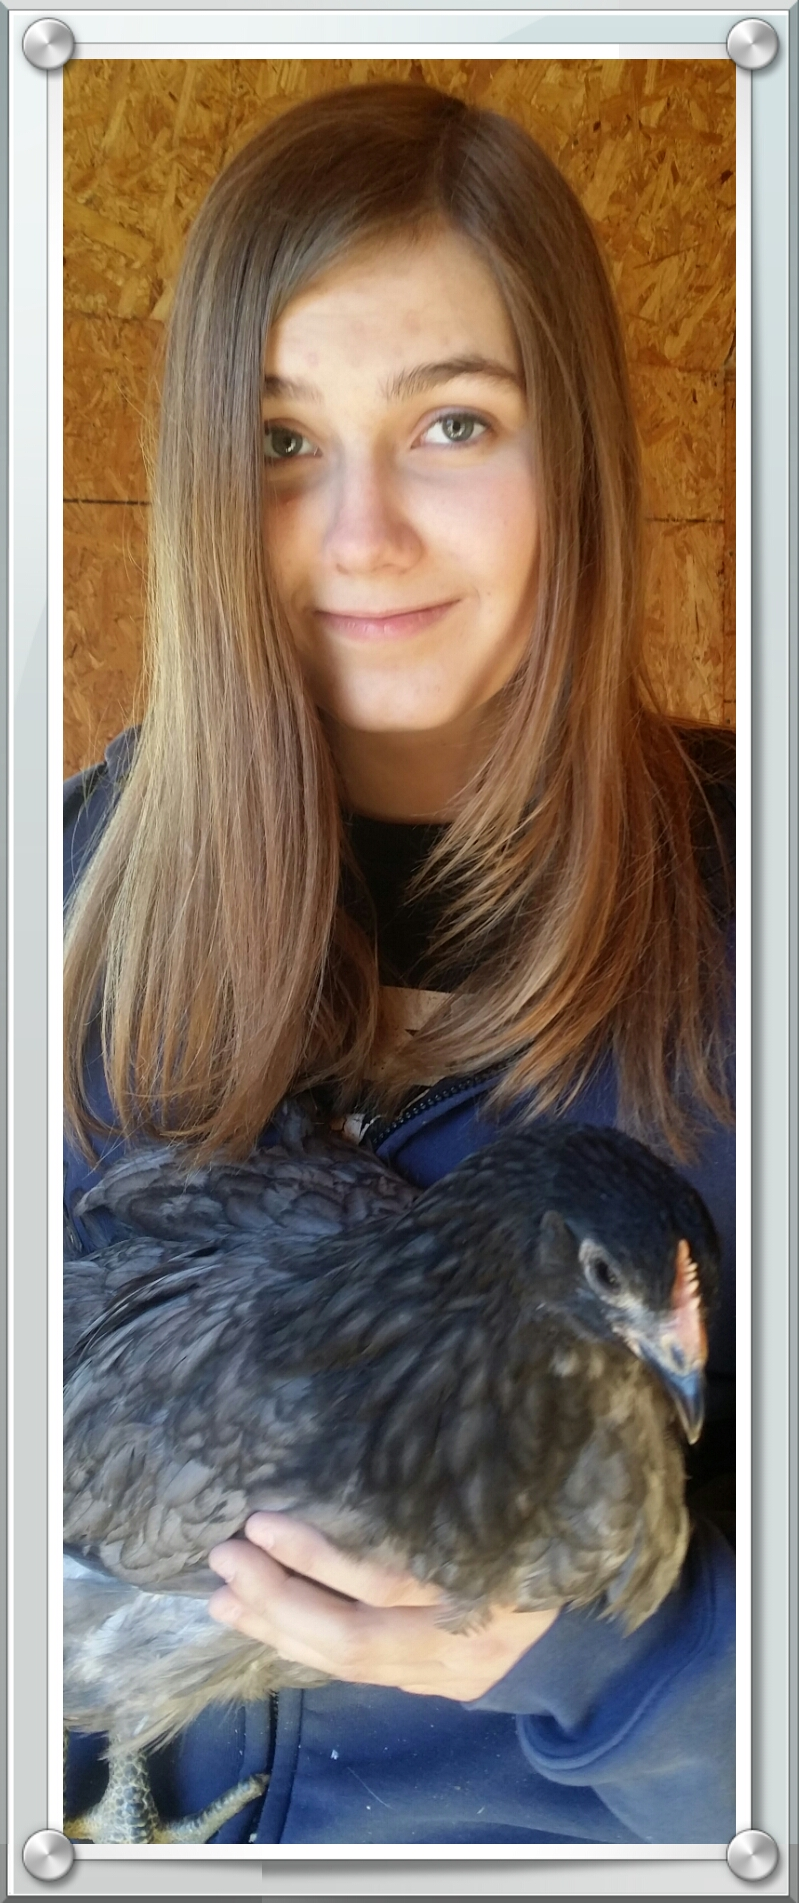 Our daughter with a nicely laced Blue Jersey Giant pullet.